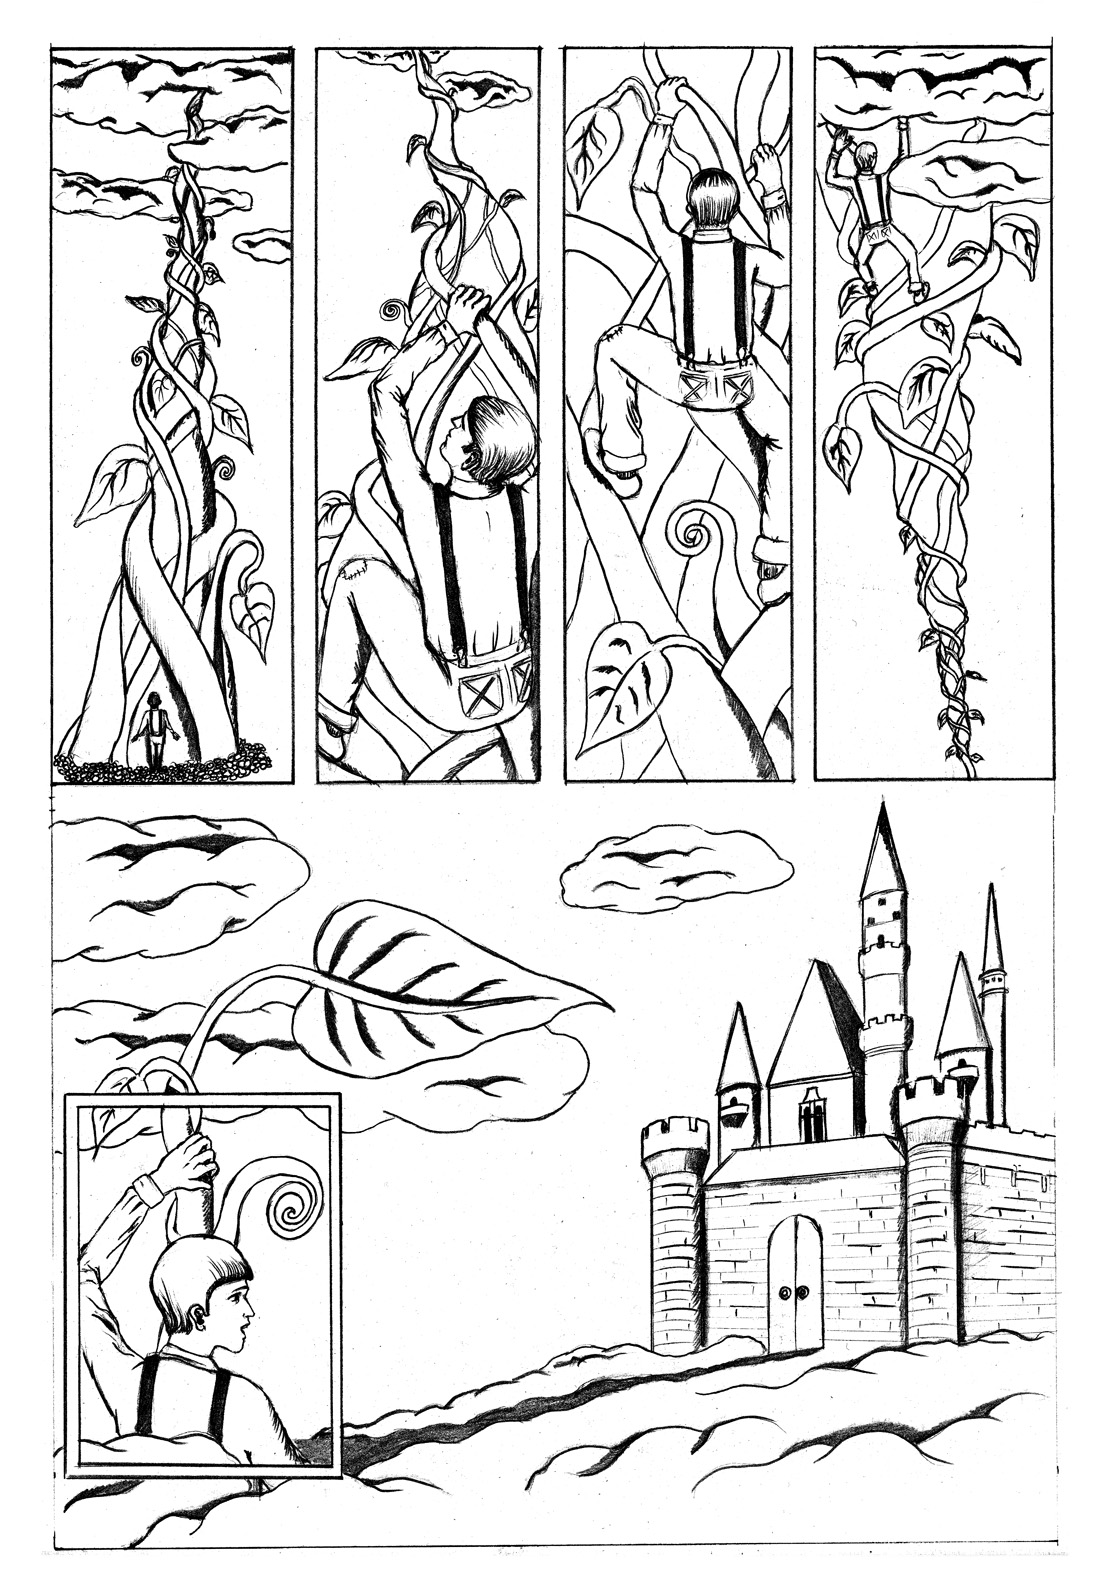 Images About Story Book Jack And The Beanstalk On